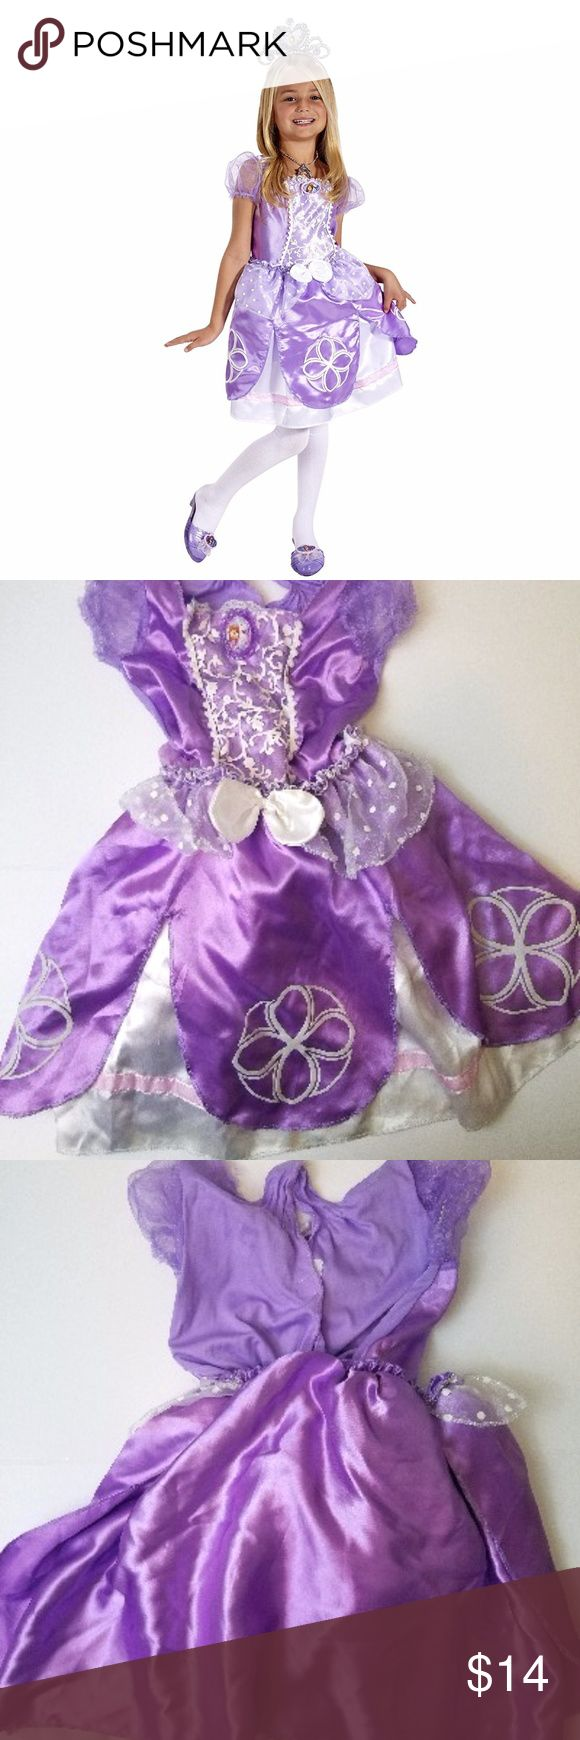 🎃Ships Today! Sm.Disney's Sofia the First Costume DOES NOT INCLUDE ACCESSORIES. PICS 2 THROUGH 4 SHOW ACTUAL ITEM. ***SIZE SMALL 4-6X*** Good gently used with 3 flaws as shown in pics (Loose hem and run at top back and tear in the dress...hidden when wearing poofy skirt over)  Look just like Sofia in this magical 2 in 1 Transforming Dress. The removable skirt allows girls to transform from ballgown to ballerina in one easy step to double the playtime fun! Its ruffled sleeves, satin details…